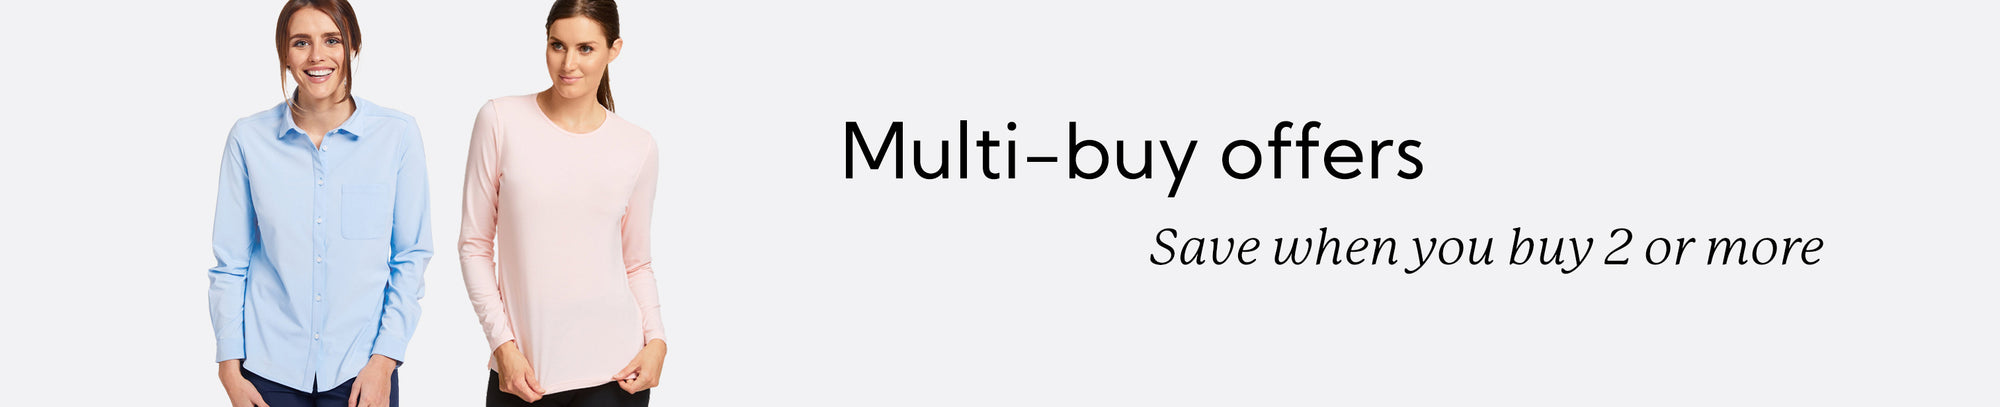 Multi-buy offers for Women: Save when you buy 2 or more